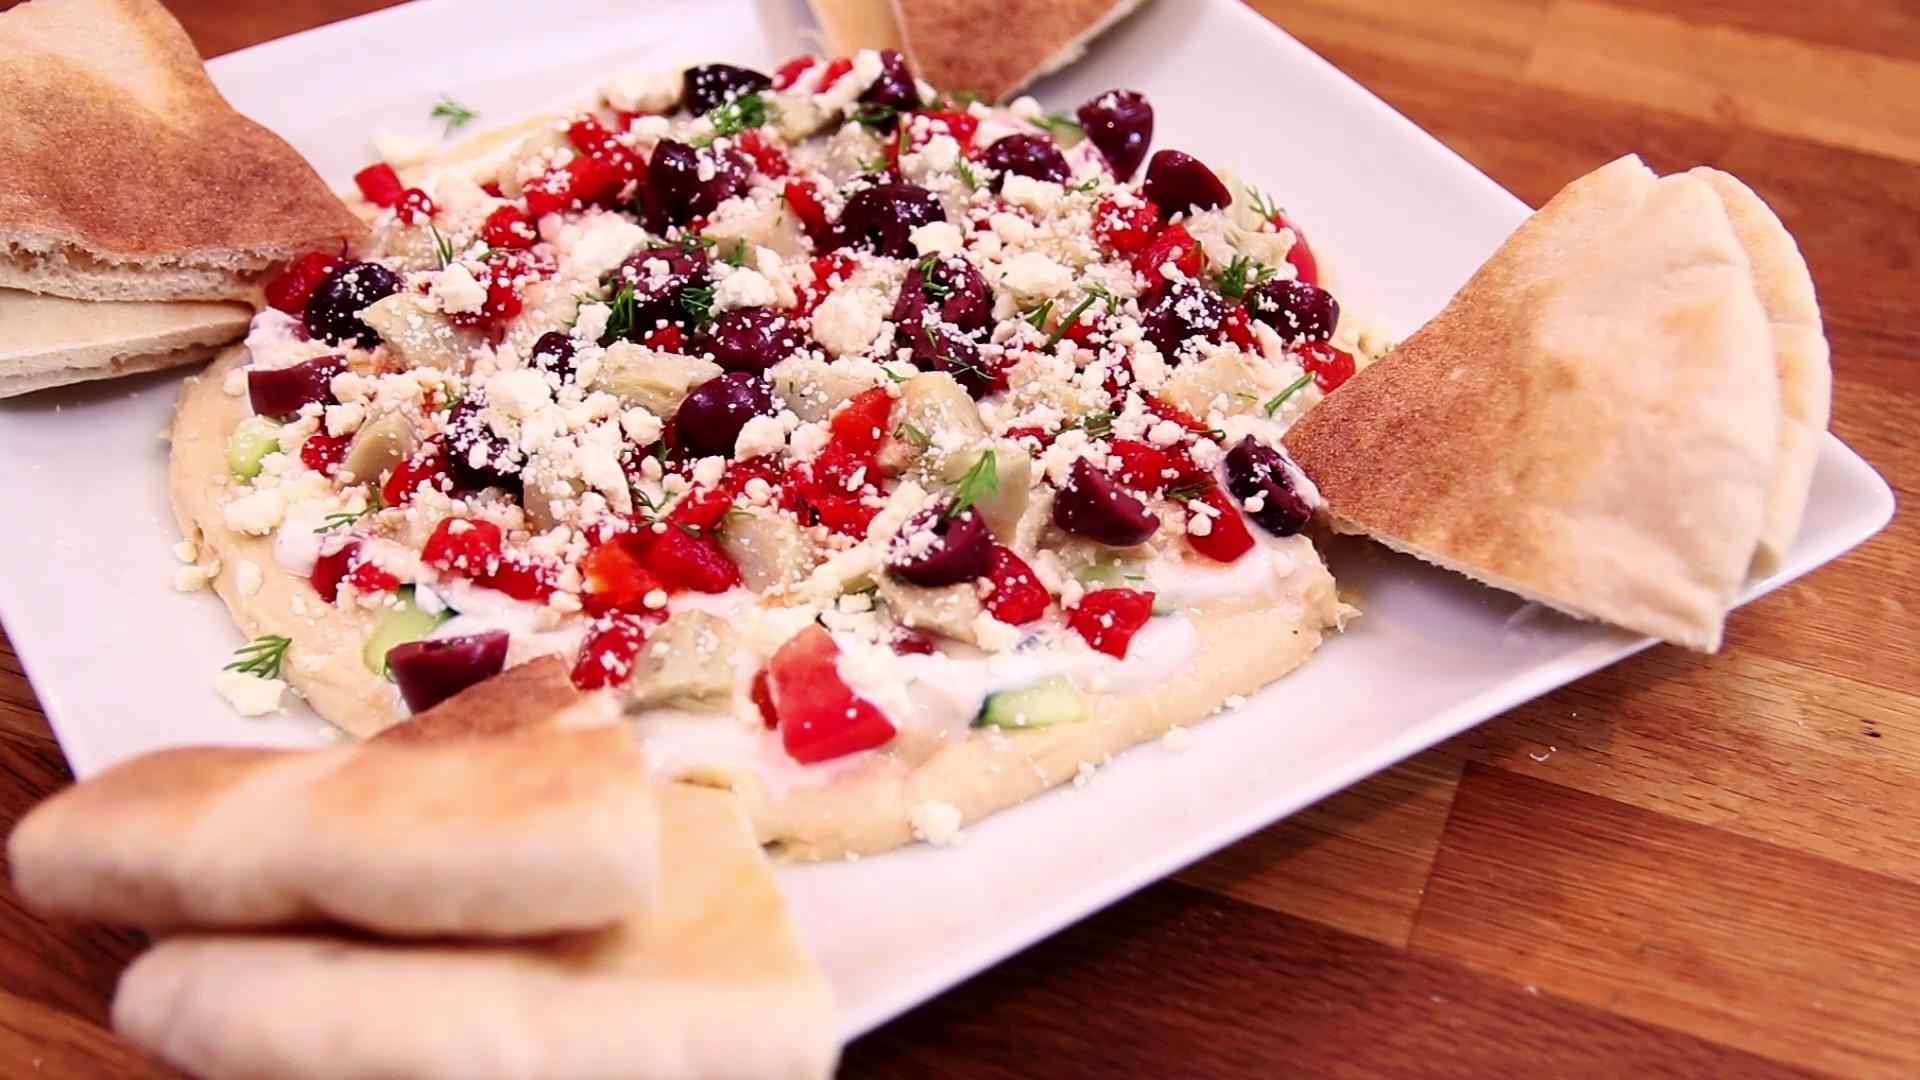 This Hummus Dip Has Everything You Want in an Appetizer